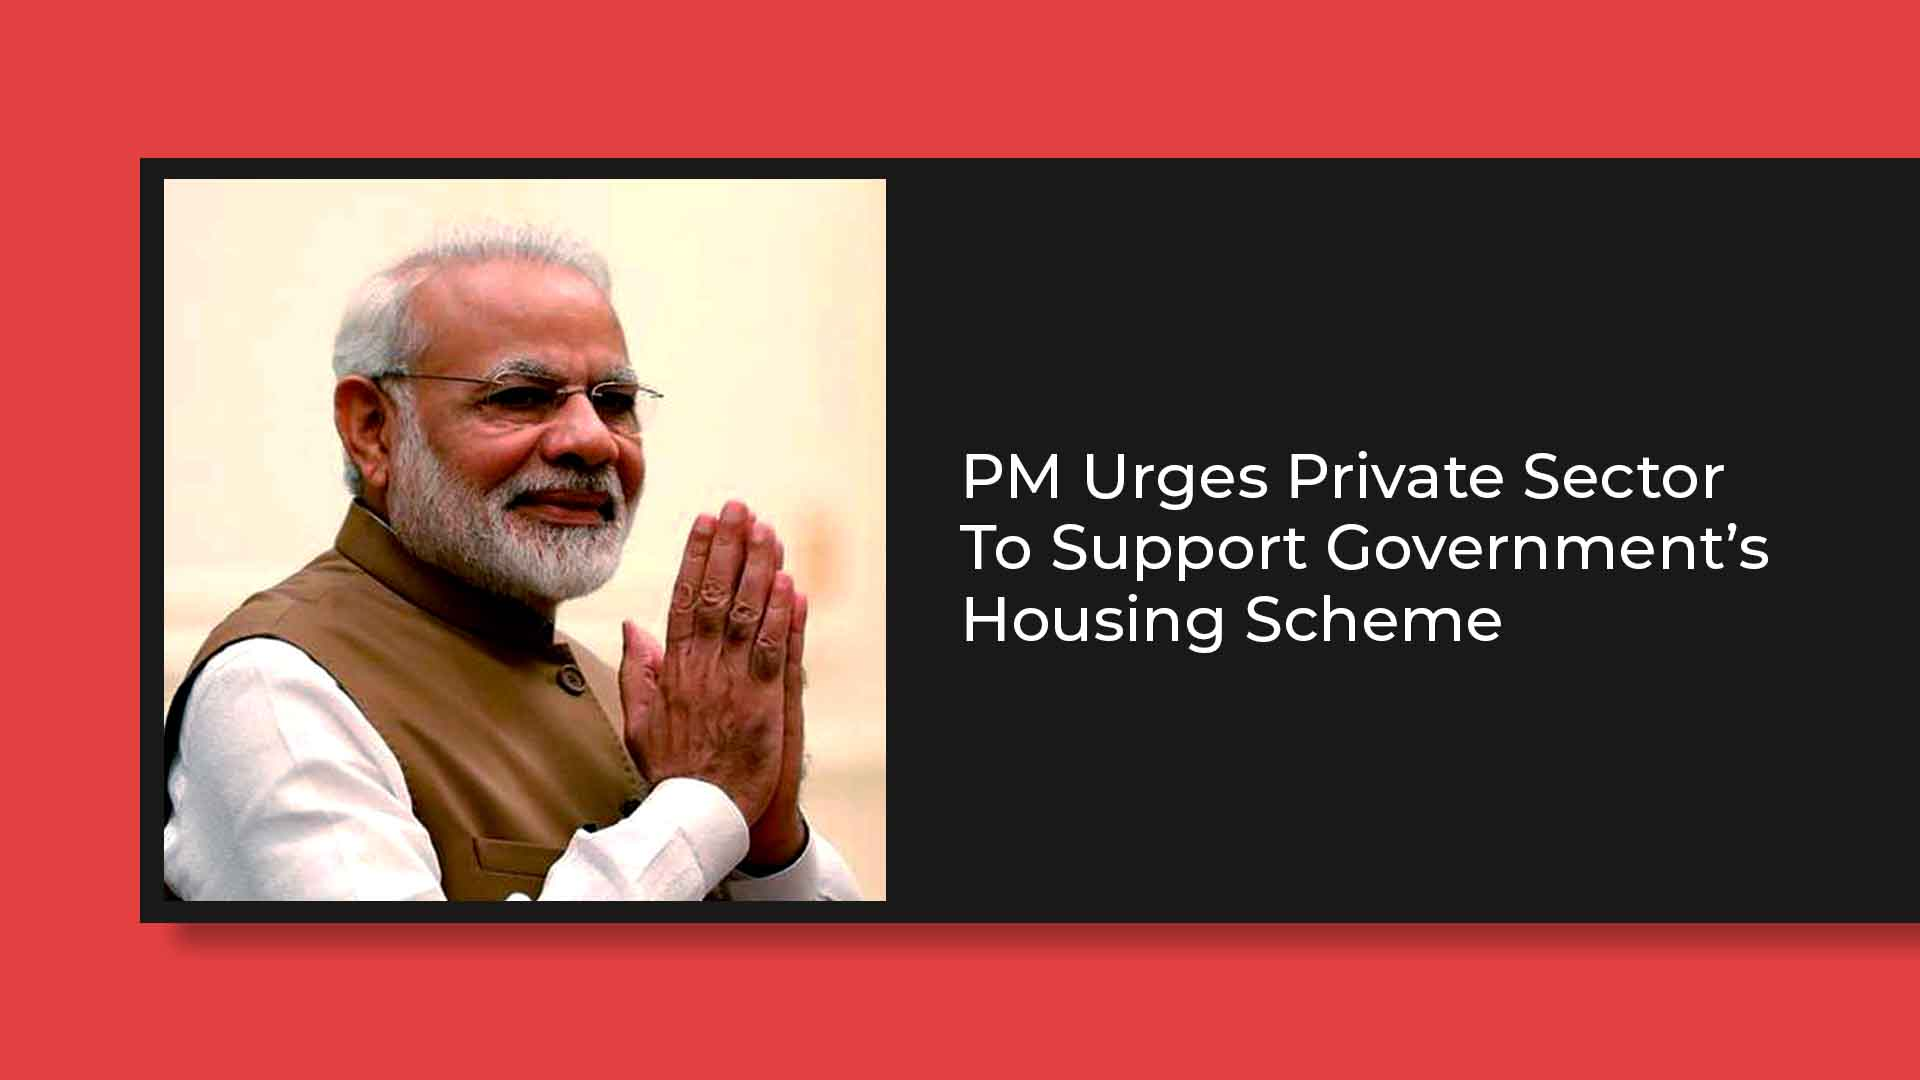 PM Modi Invites The Private Sector To Help Attain 'Housing for All'